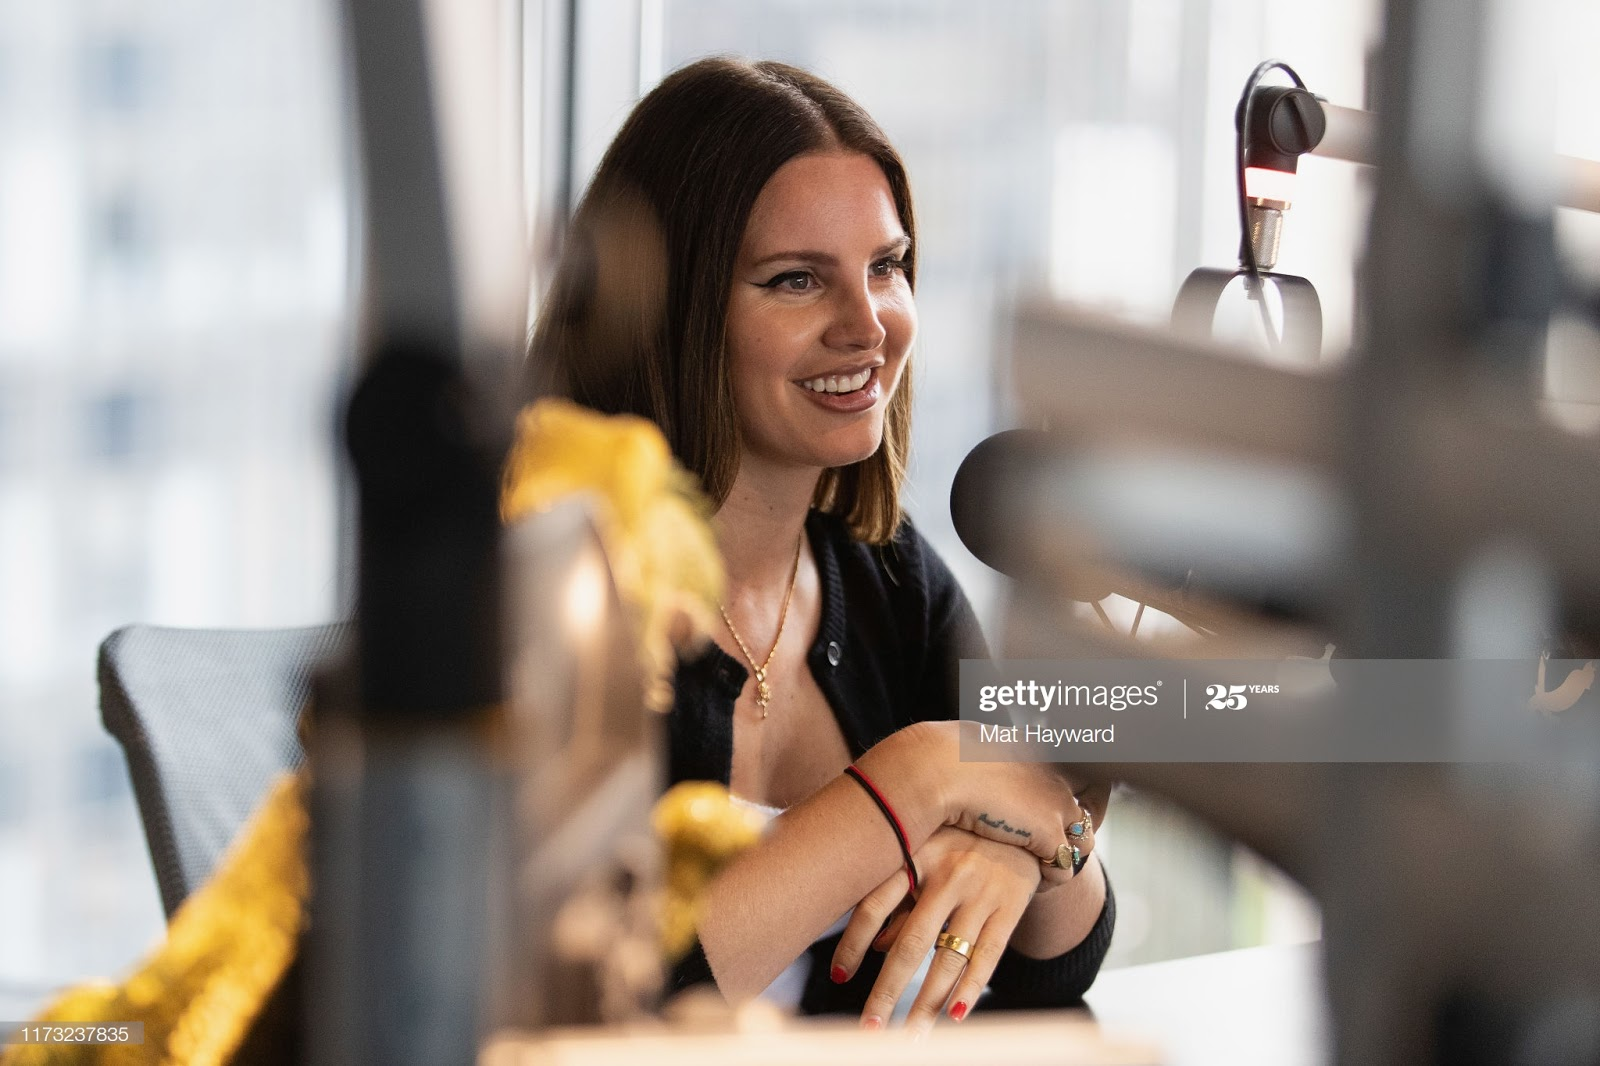 SEATTLE, WA - OCTOBER 02: Singer Lana Del Rey speaks at 107.7 The End on October 2, 2019 in Seattle, Washington. (Photo by Mat Hayward/Getty Images)